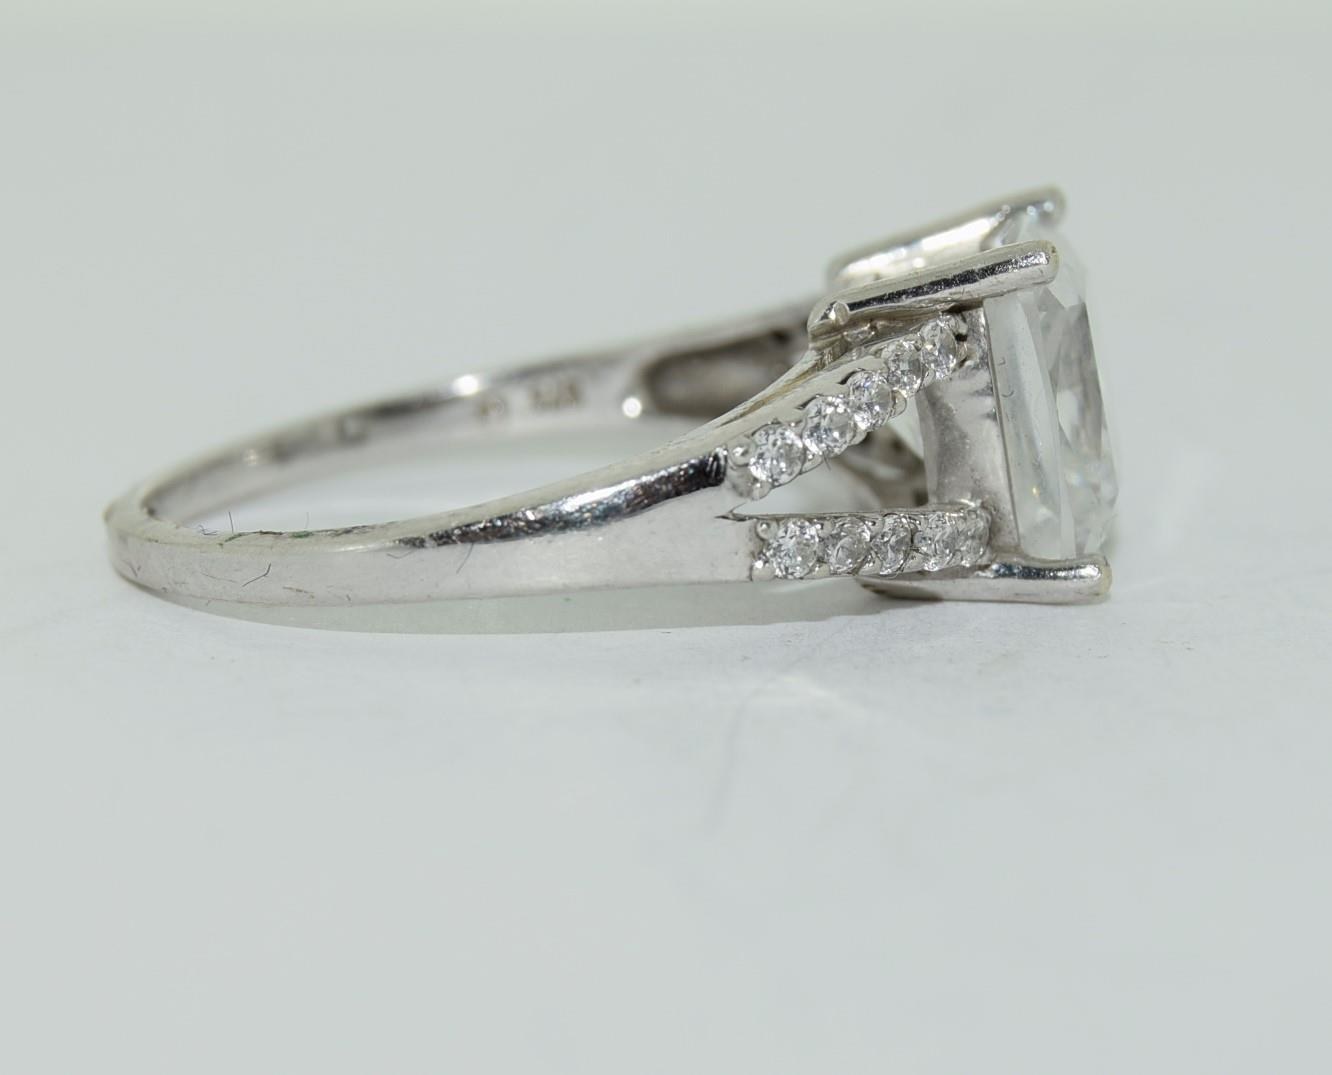 9ct white gold ladies square set solitare ring size R - Image 3 of 12